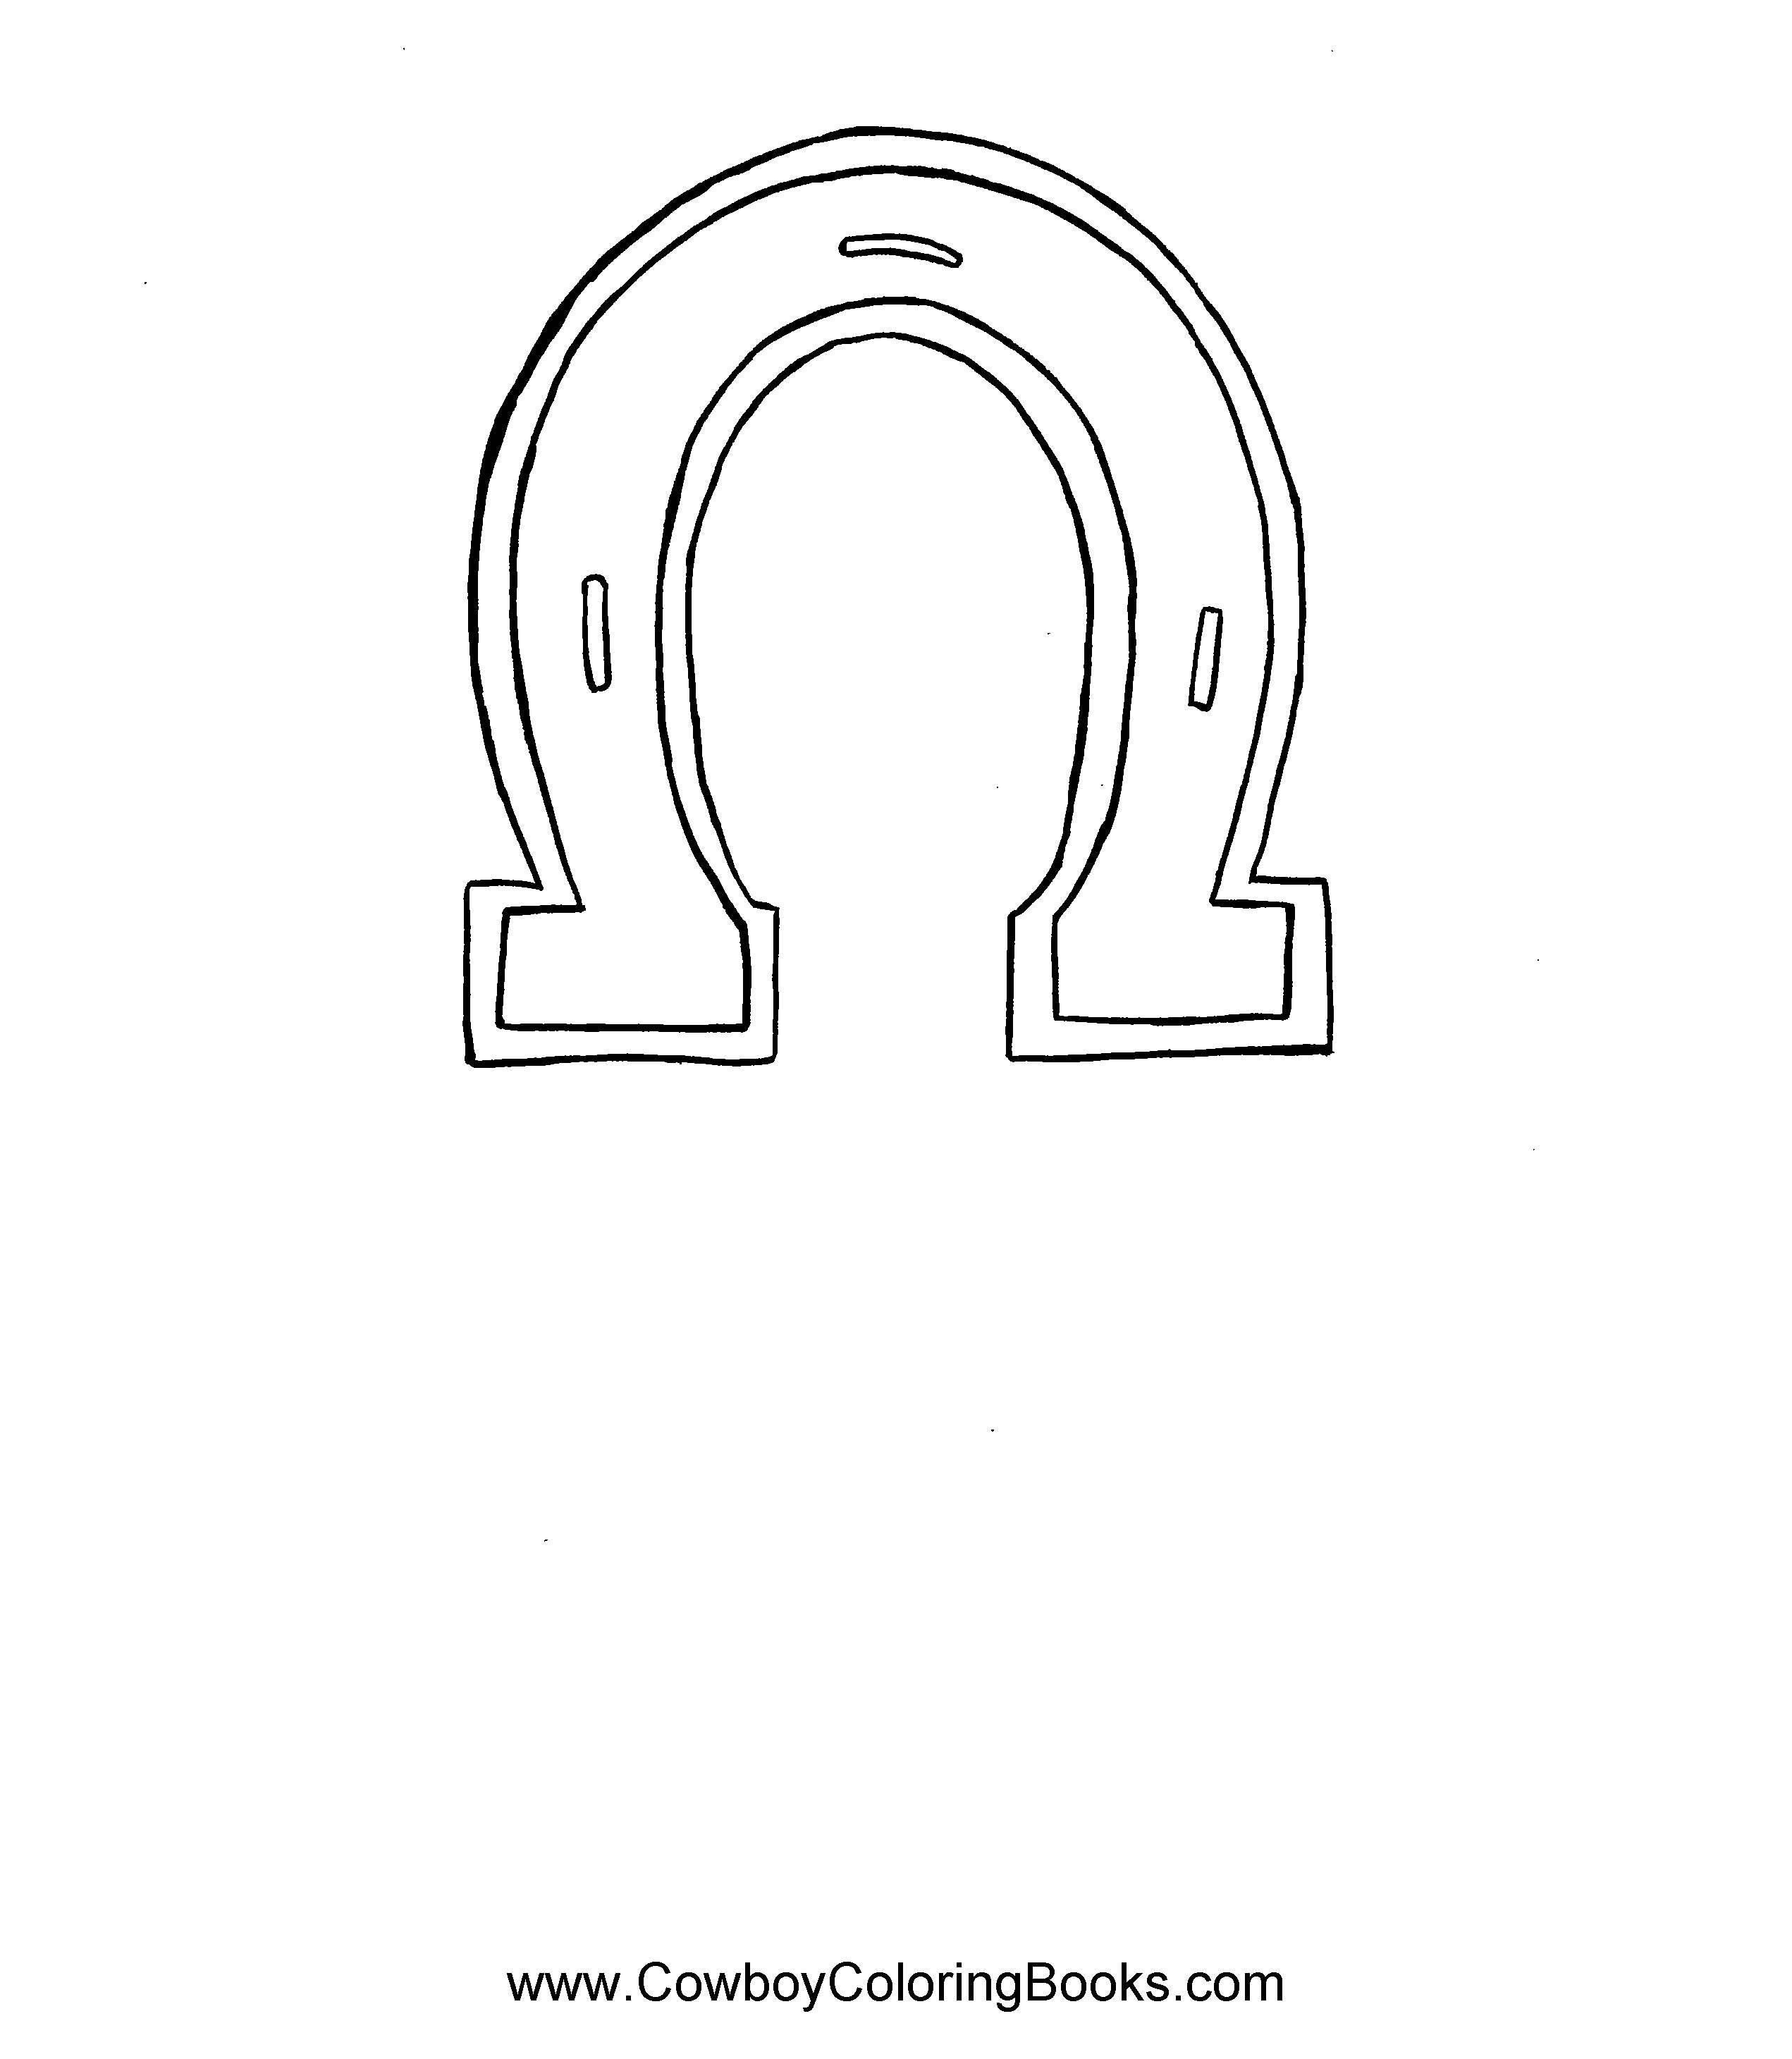 horse shoe coloring page..use for a pattern. Could make